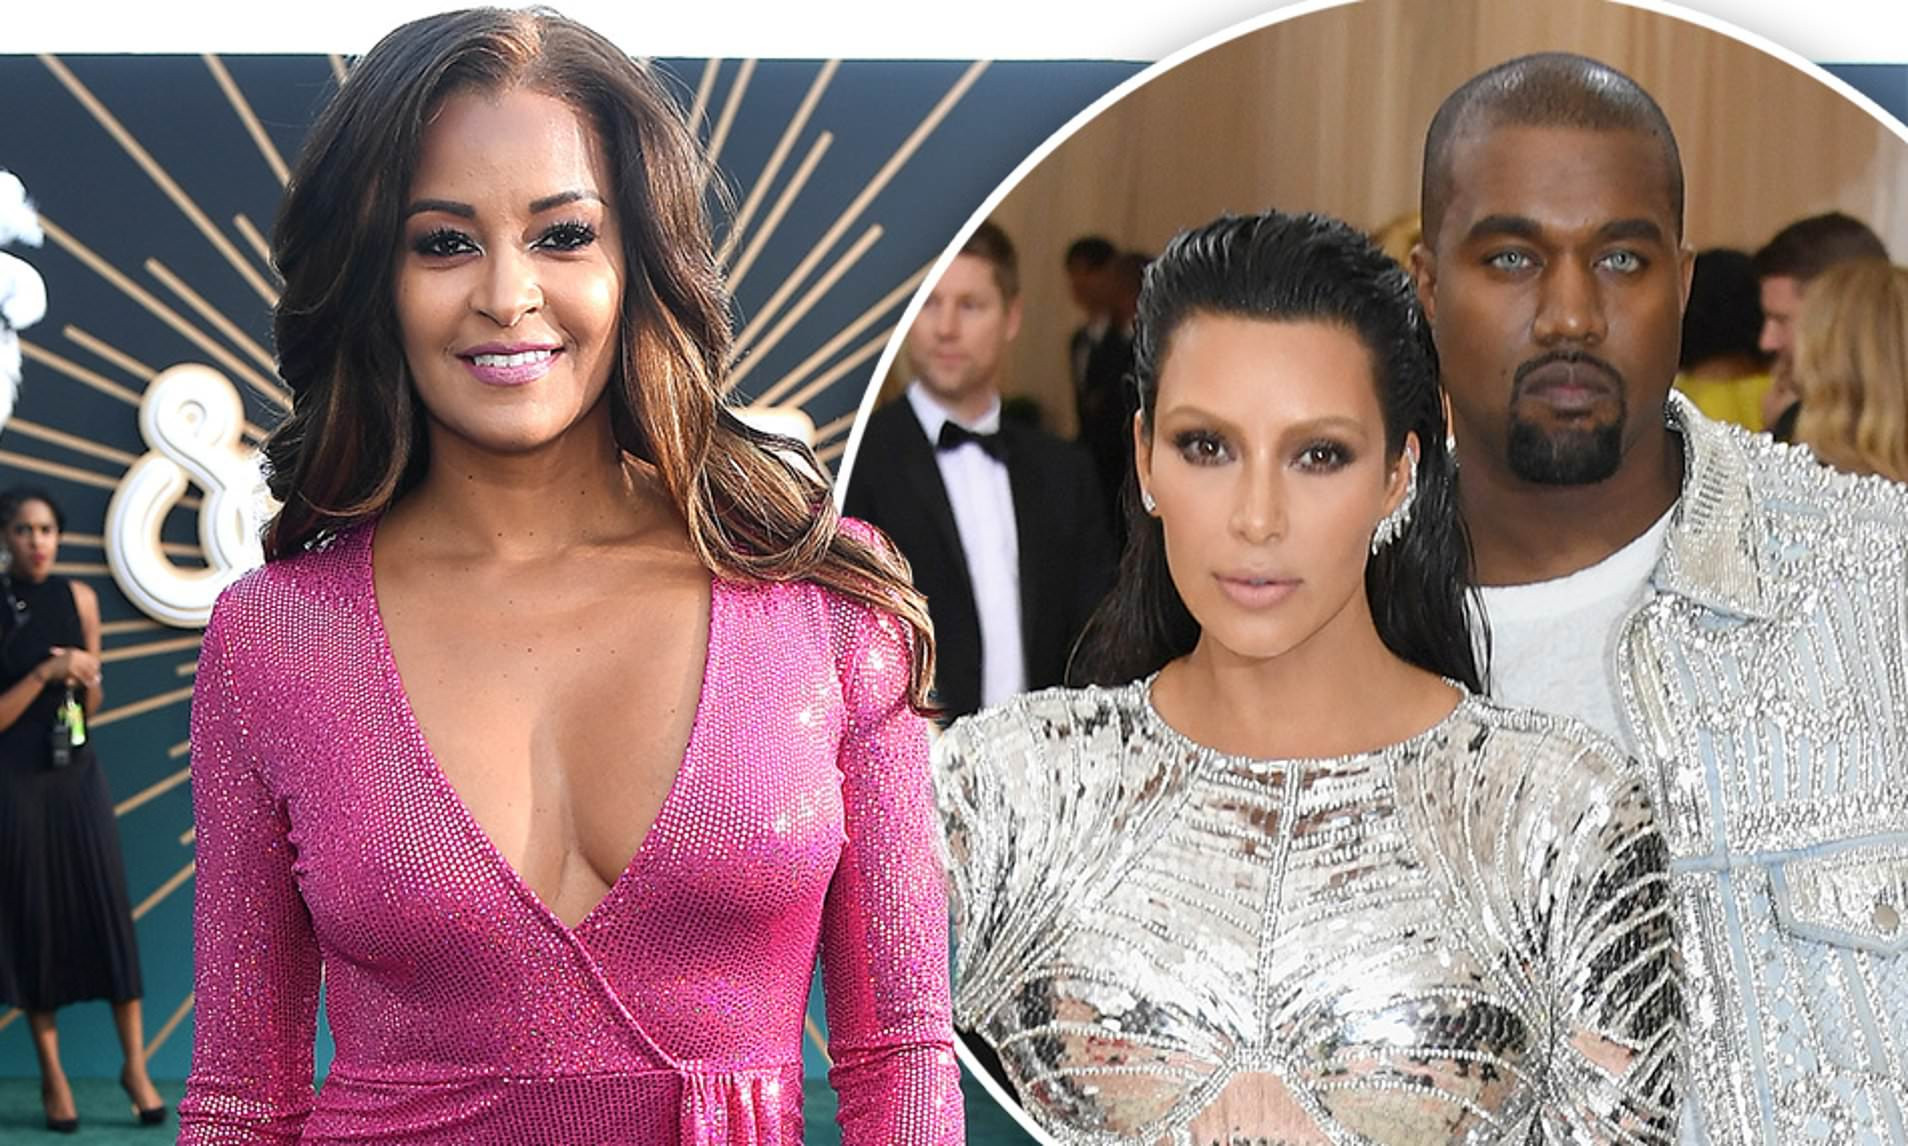 Real Housewives of Atlanta star, Claudia Jordan claims Kanye West tried to date her while still romantically involved with ex Kim Kardashian